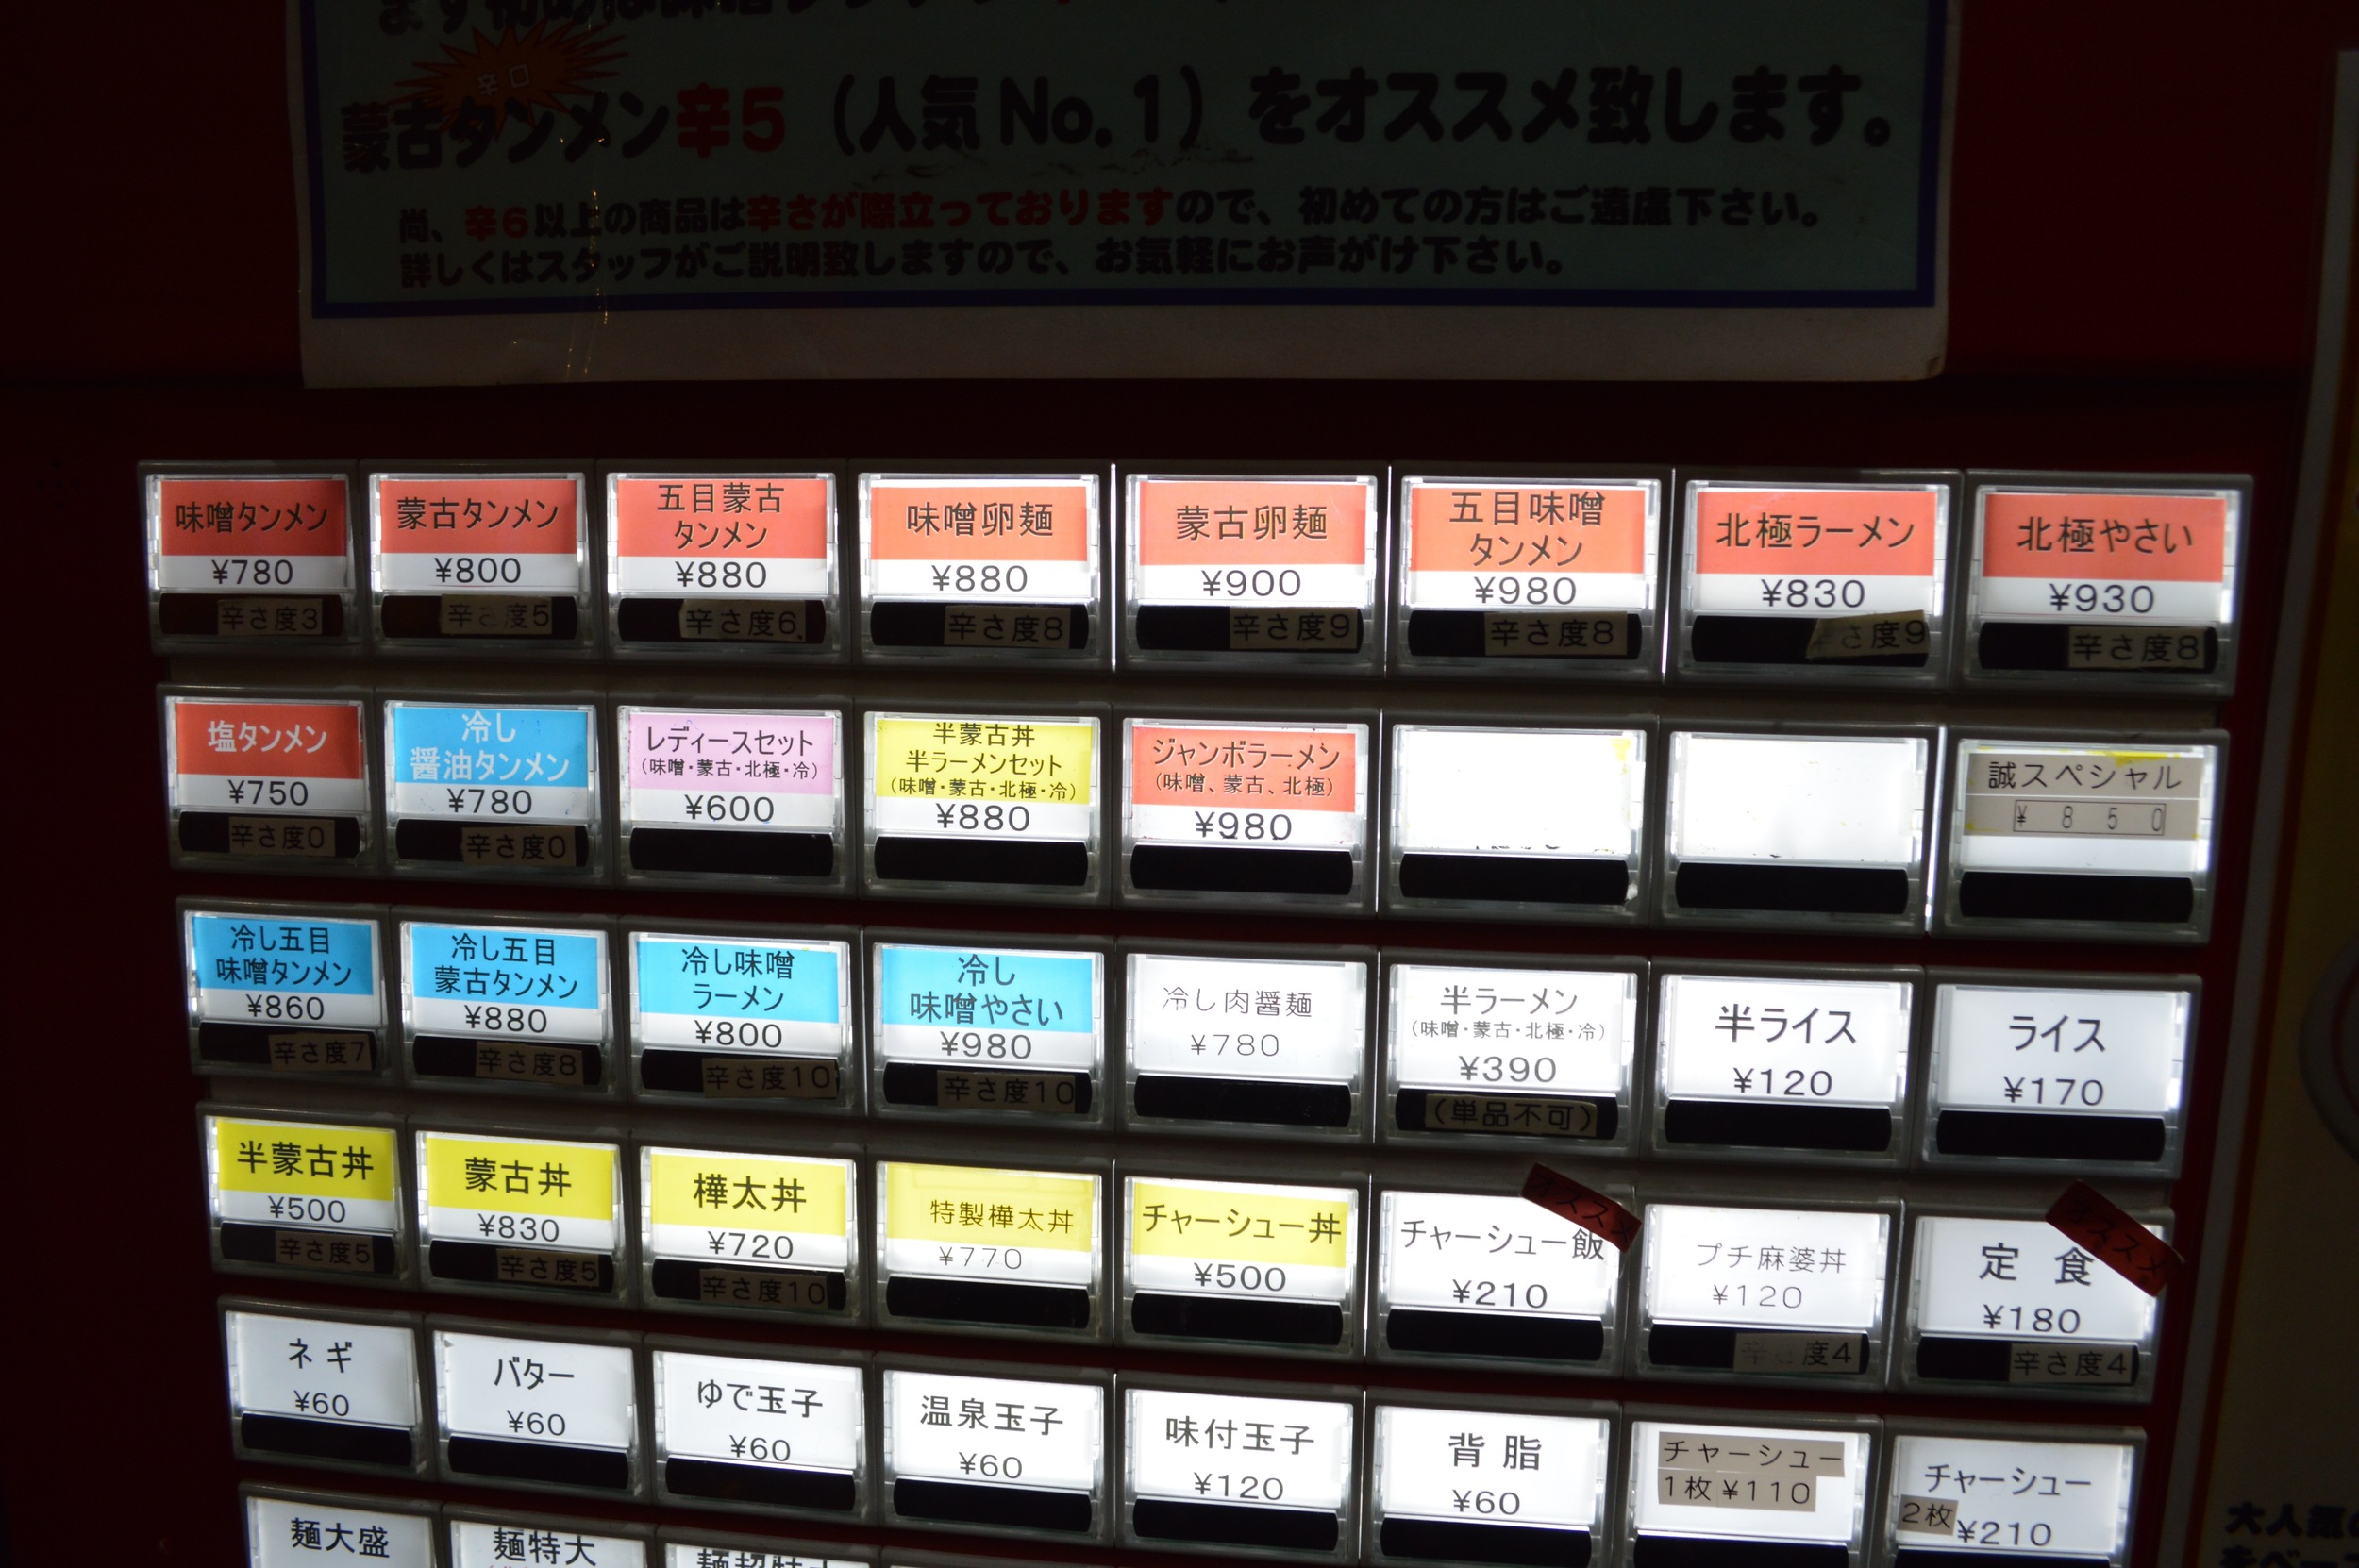 Closer look at the ticket machine